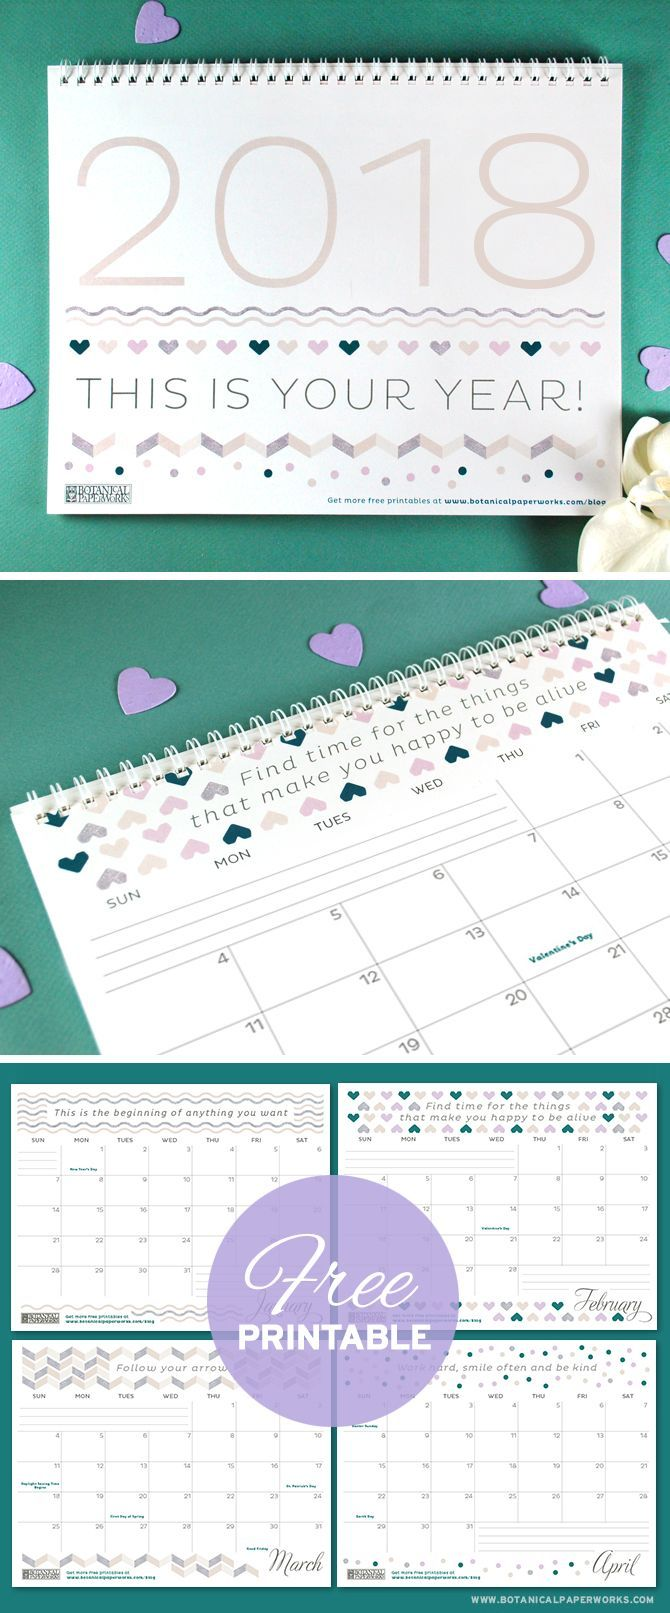 Keep track of life's special moments and feel inspired by the motivational quotes with this free printable calendar. See more designs and download your favorite 2018 calendar on our blog!